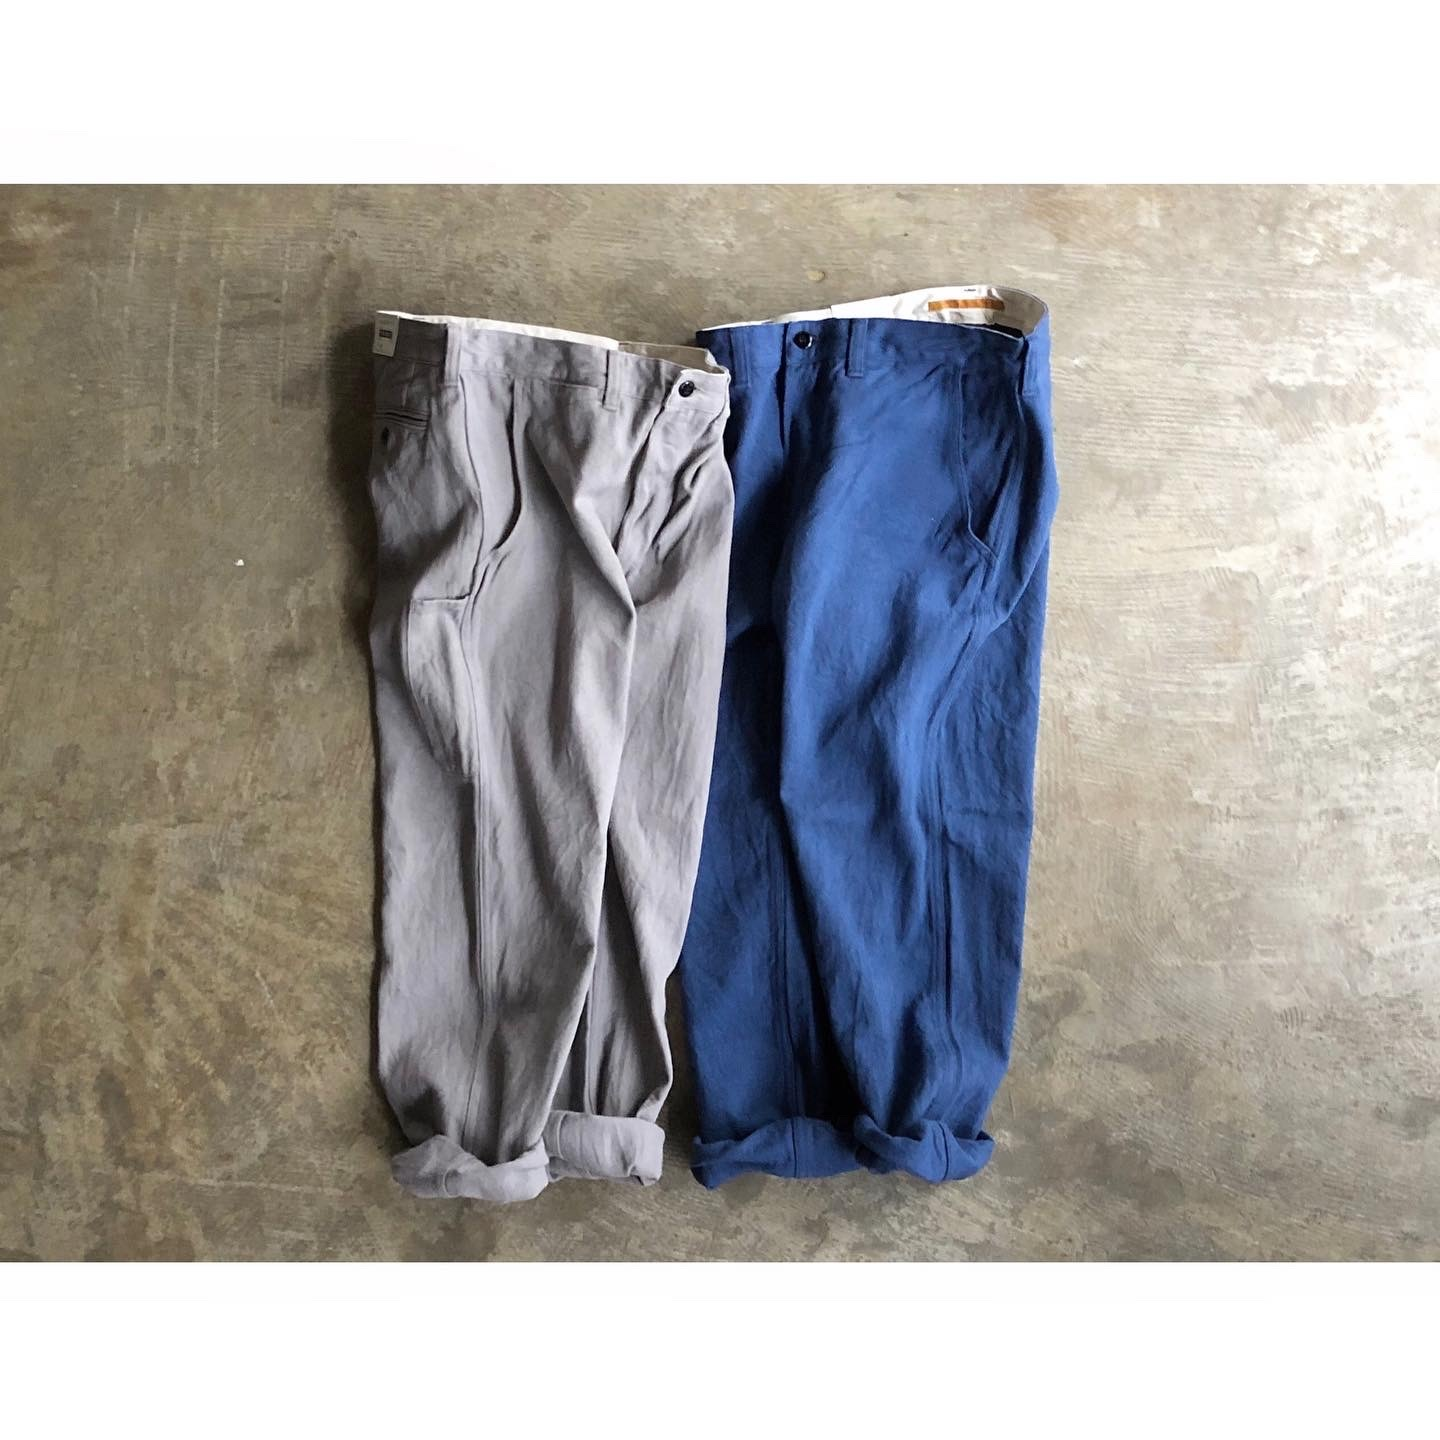 another 20th century (アナザートゥエンティースセンチュリー) Yorkshire Daily Pants C/Linen